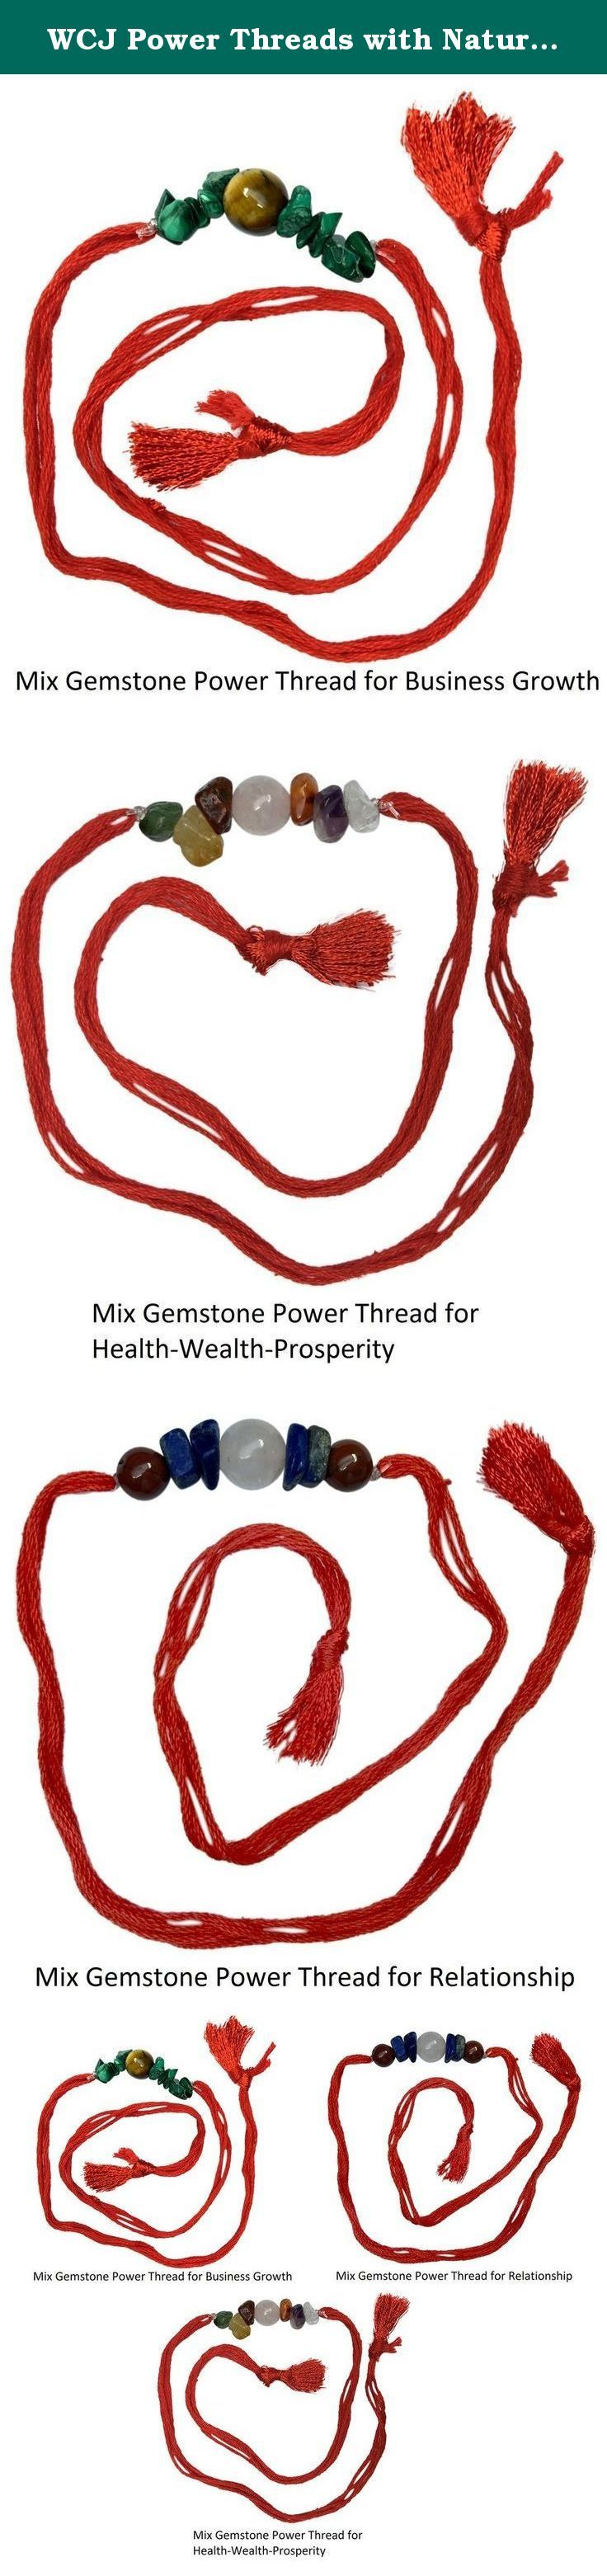 WCJ Power Threads with Natural Gemstones - Set of 3 pcs (As shown in picture) for Business Growth, Health-Wealth-Prosperity & Enduring Relationship. Power Threads/ Rakhi with Healing Benefits. Best Gift for Loved Ones. Natural Gemstone Power Threads for Business, Health-Wealth-Properity & Relations. Set of Three Rakhi, Natural Stones With Red Color Thread, Raksha Bandhan Gift for your Brother.